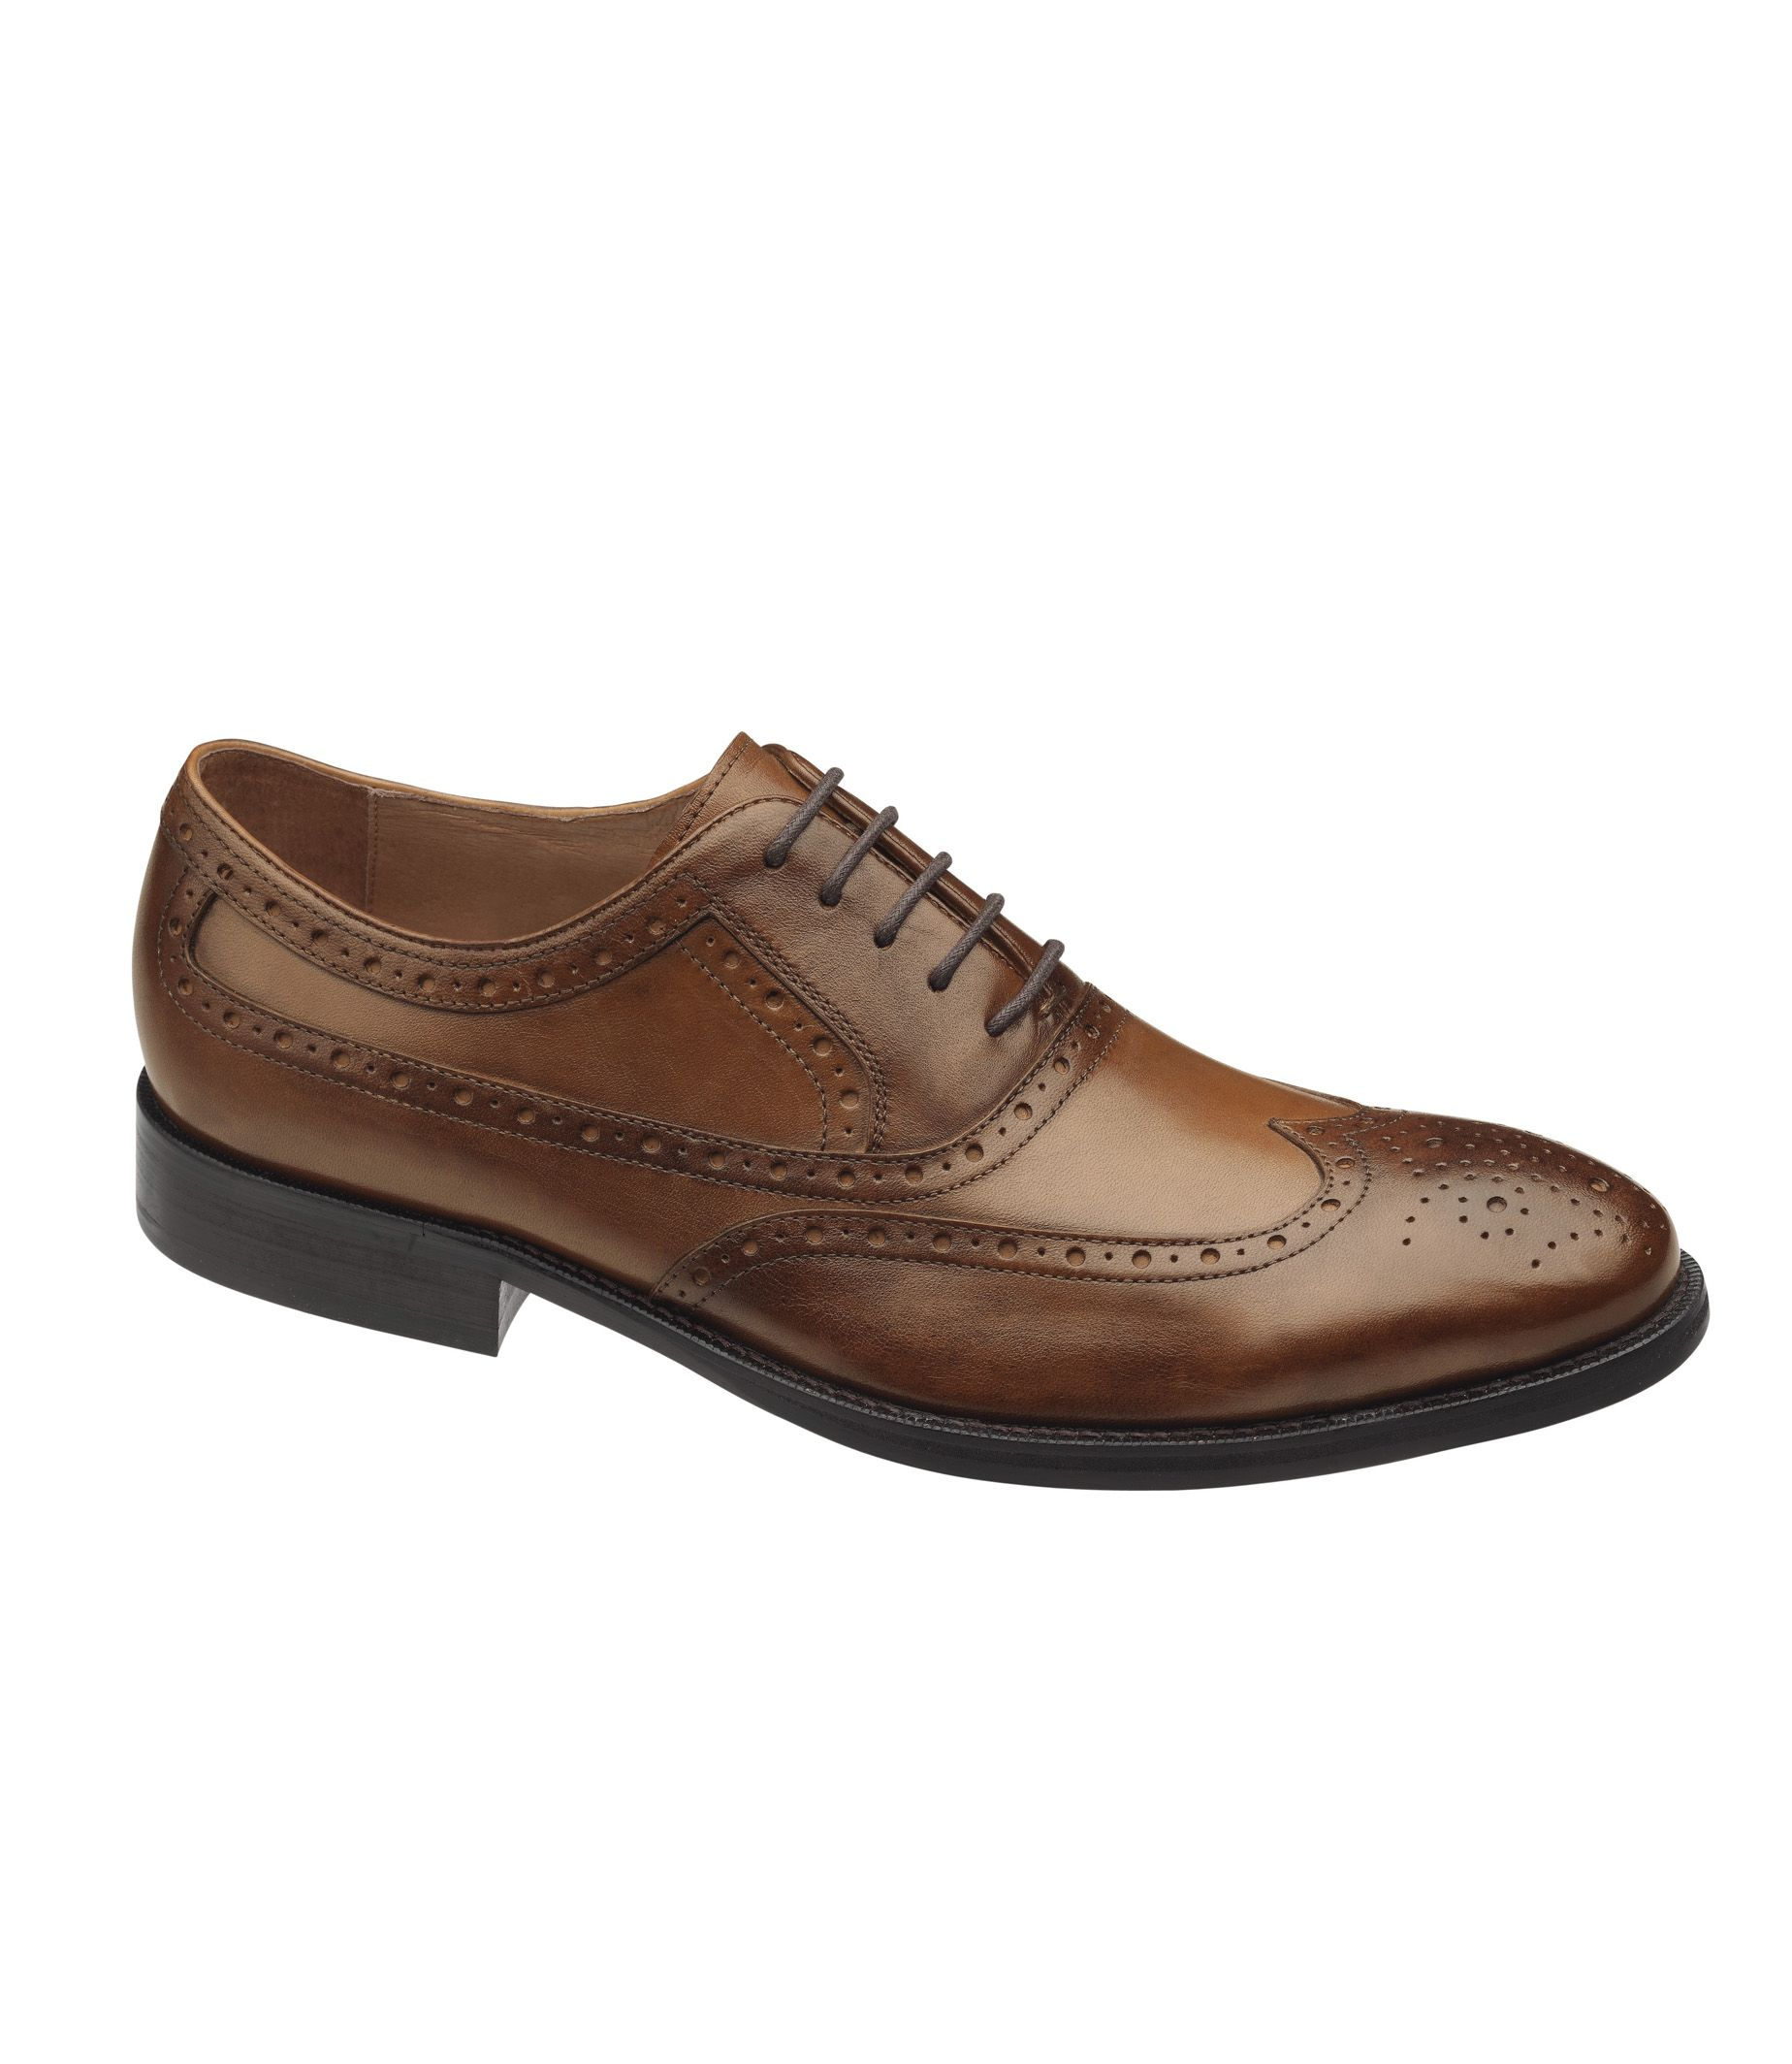 Tyndall Wing Tip Shoe by Johnston & Murphy- Traditional 1920s Styling